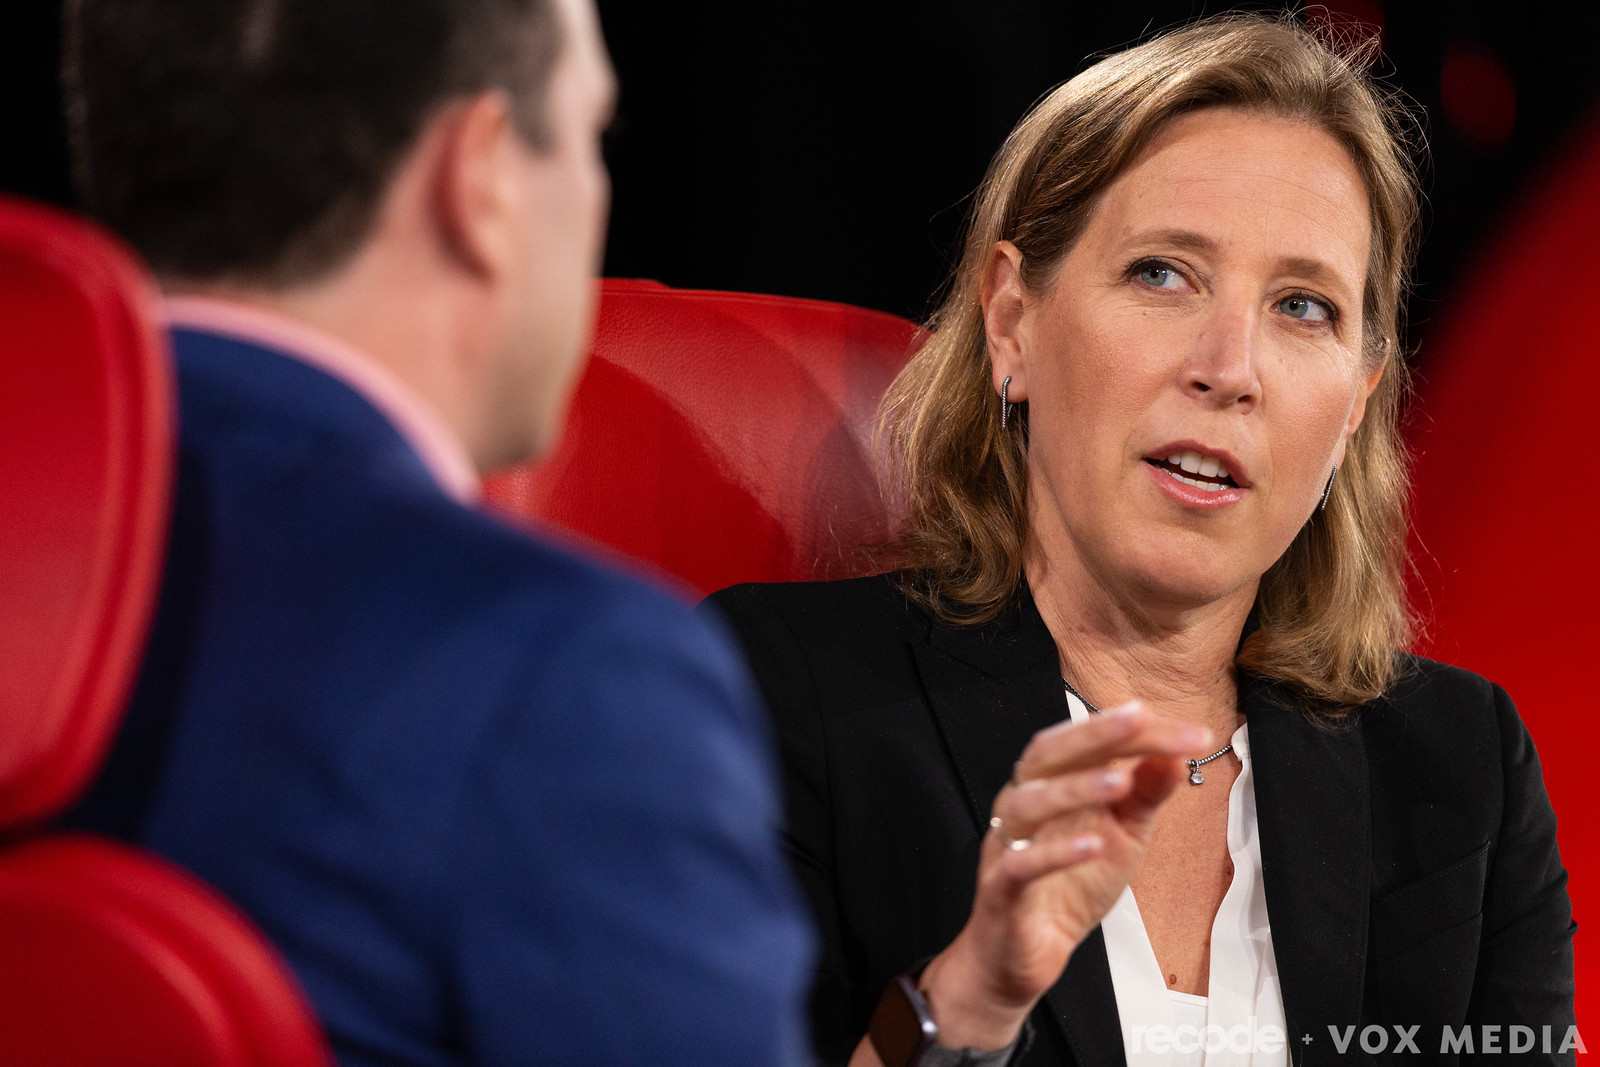 YouTube CEO Susan Wojcicki talks to Recode's Peter Kafka onstage at Code Conference in June 2019.